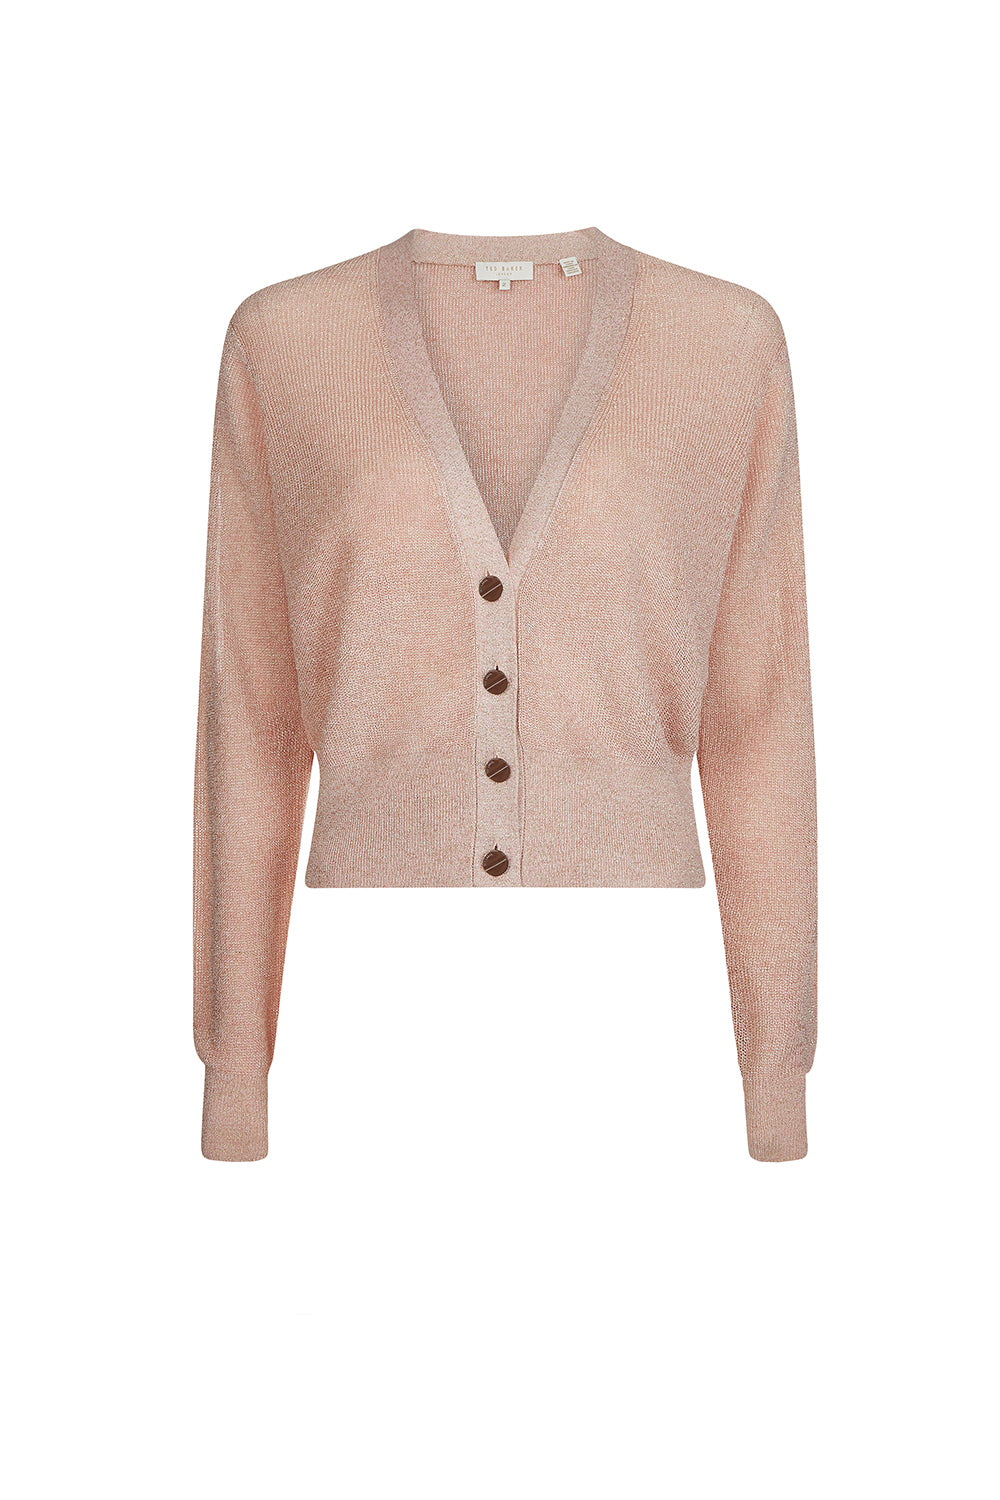 Ted Baker /  Madieyy Neck Cardi  / Pink